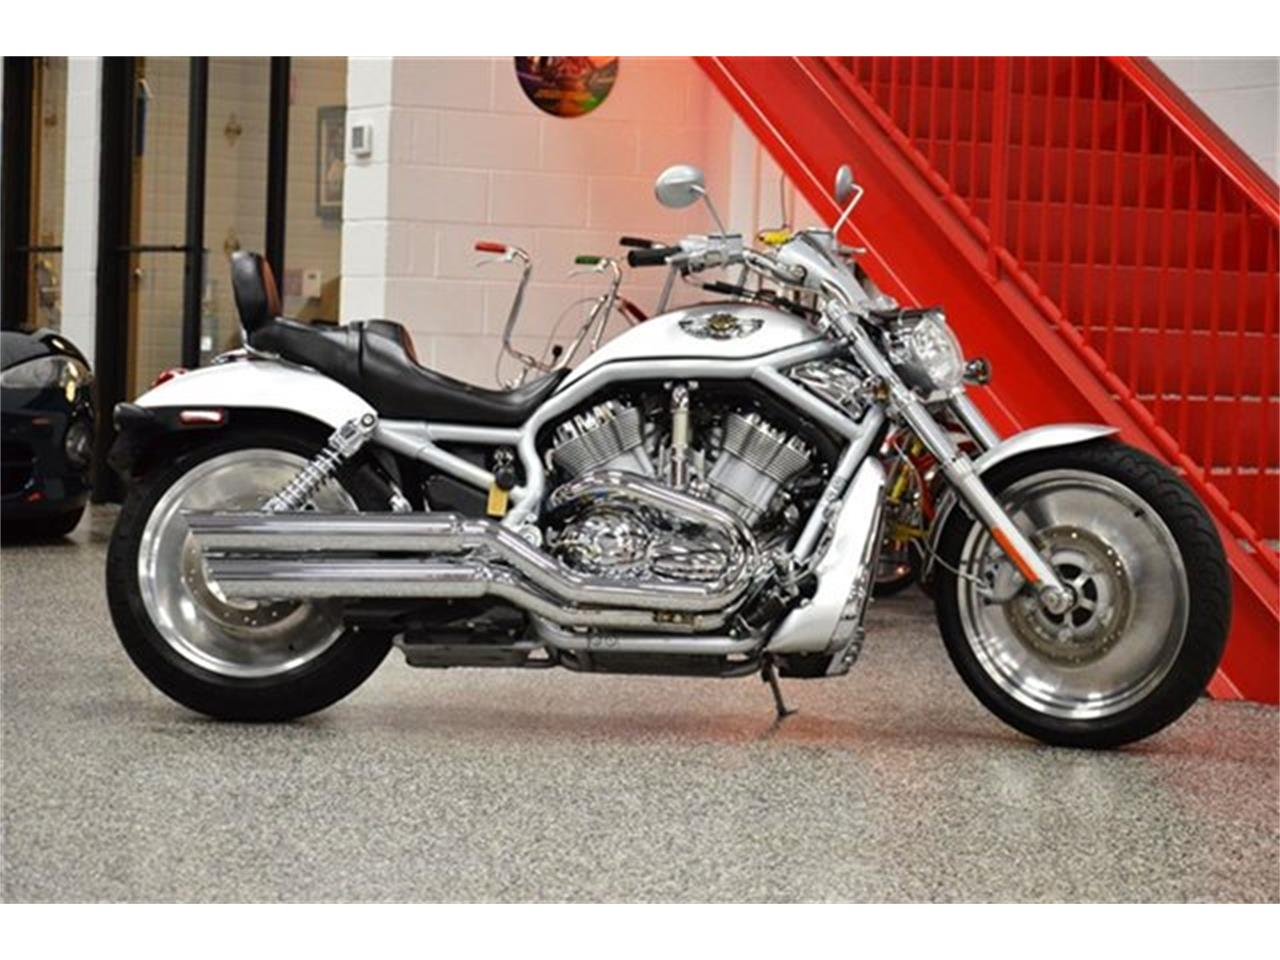 2003 Harley-Davidson VRSC for sale in Plainfield, IL – photo 29